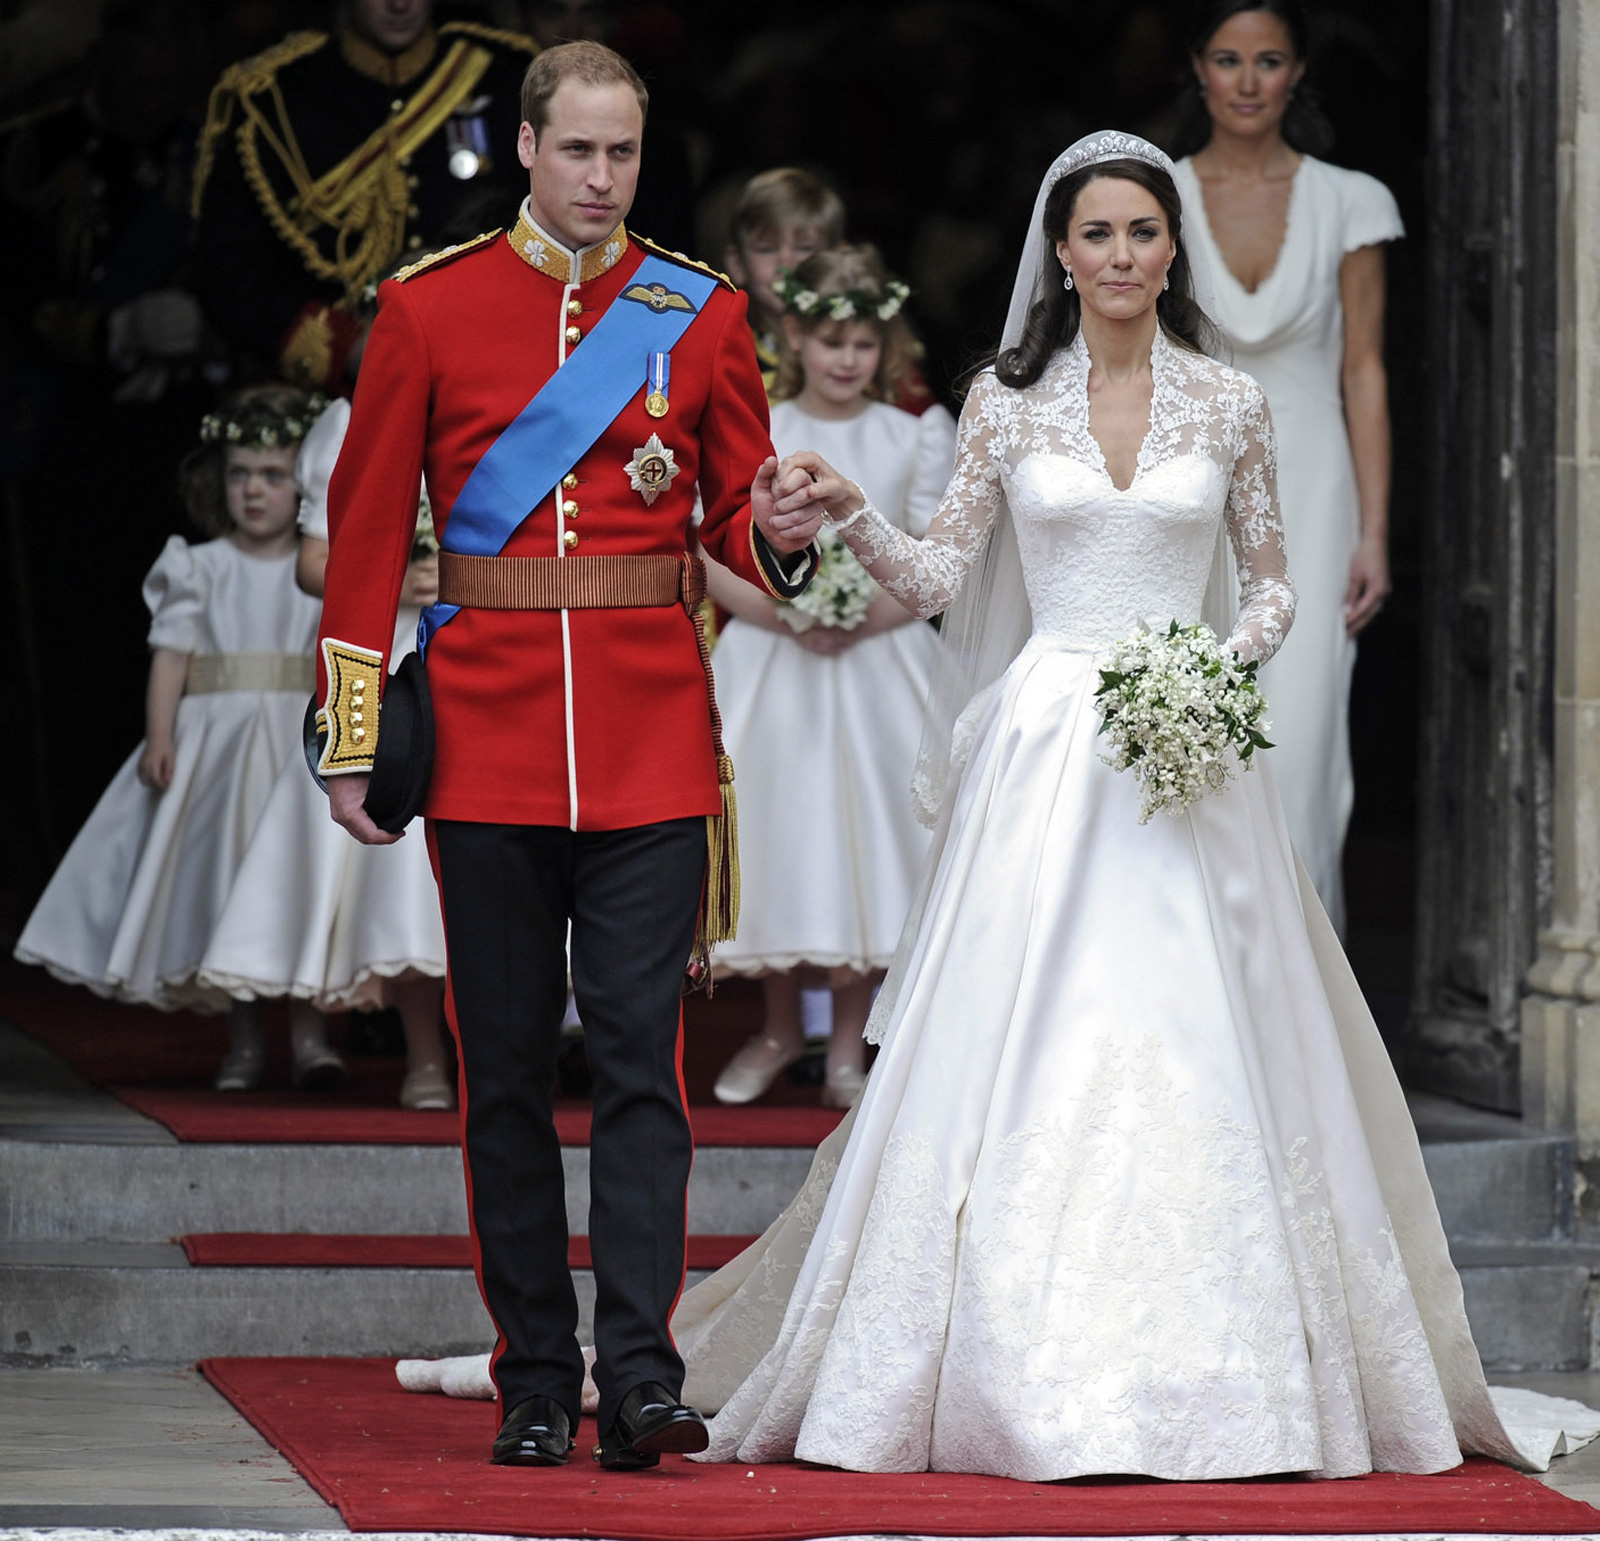 Princ William and Kate Middleton.jpg.pagespeed.ce.7wQqbJP6zN - Prince William Wedding Cake